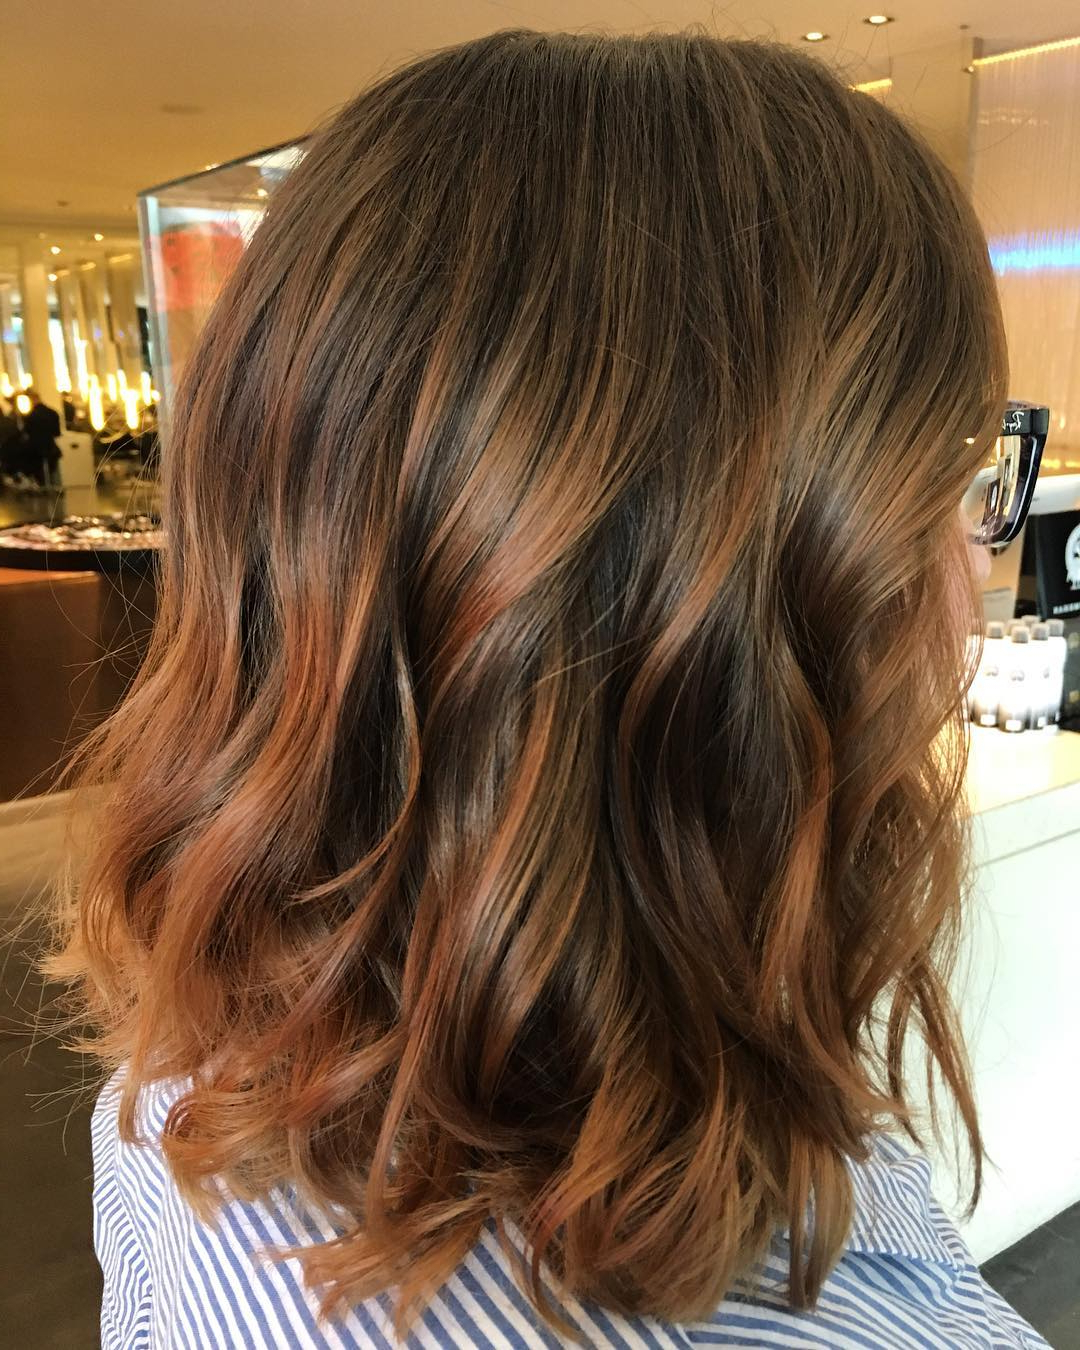 25 Exciting Medium Length Layered Haircuts – Popular Haircuts In Preferred Balayage Hairstyles For Long Layers (View 15 of 20)